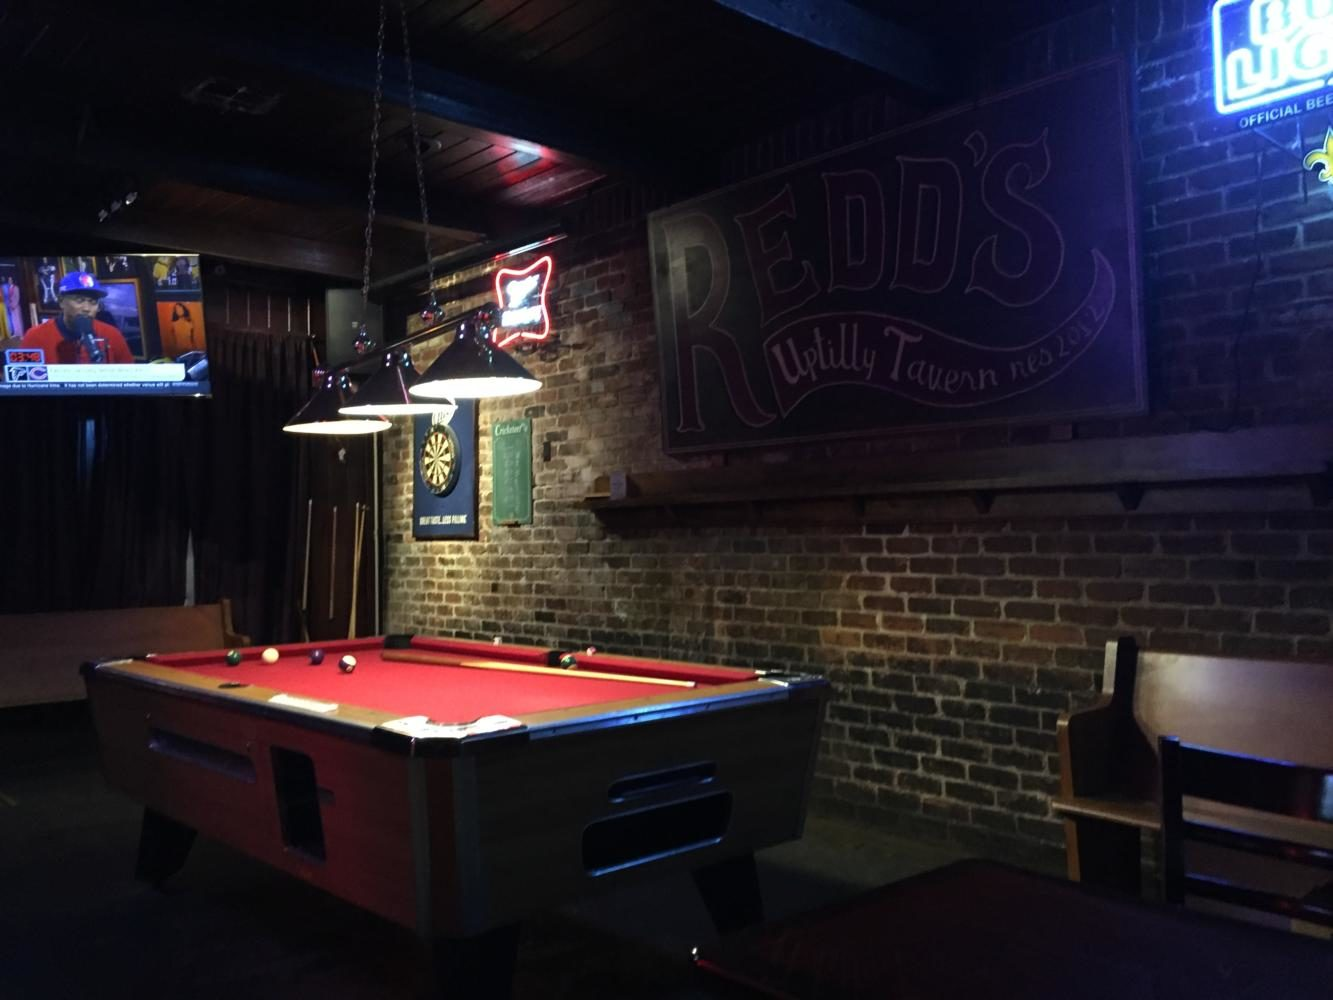 The pool table lays idle within Redd's Uptown Tavern. Reid's is one of several college hangouts on Maple Street. Photo credit: Caleb Beck